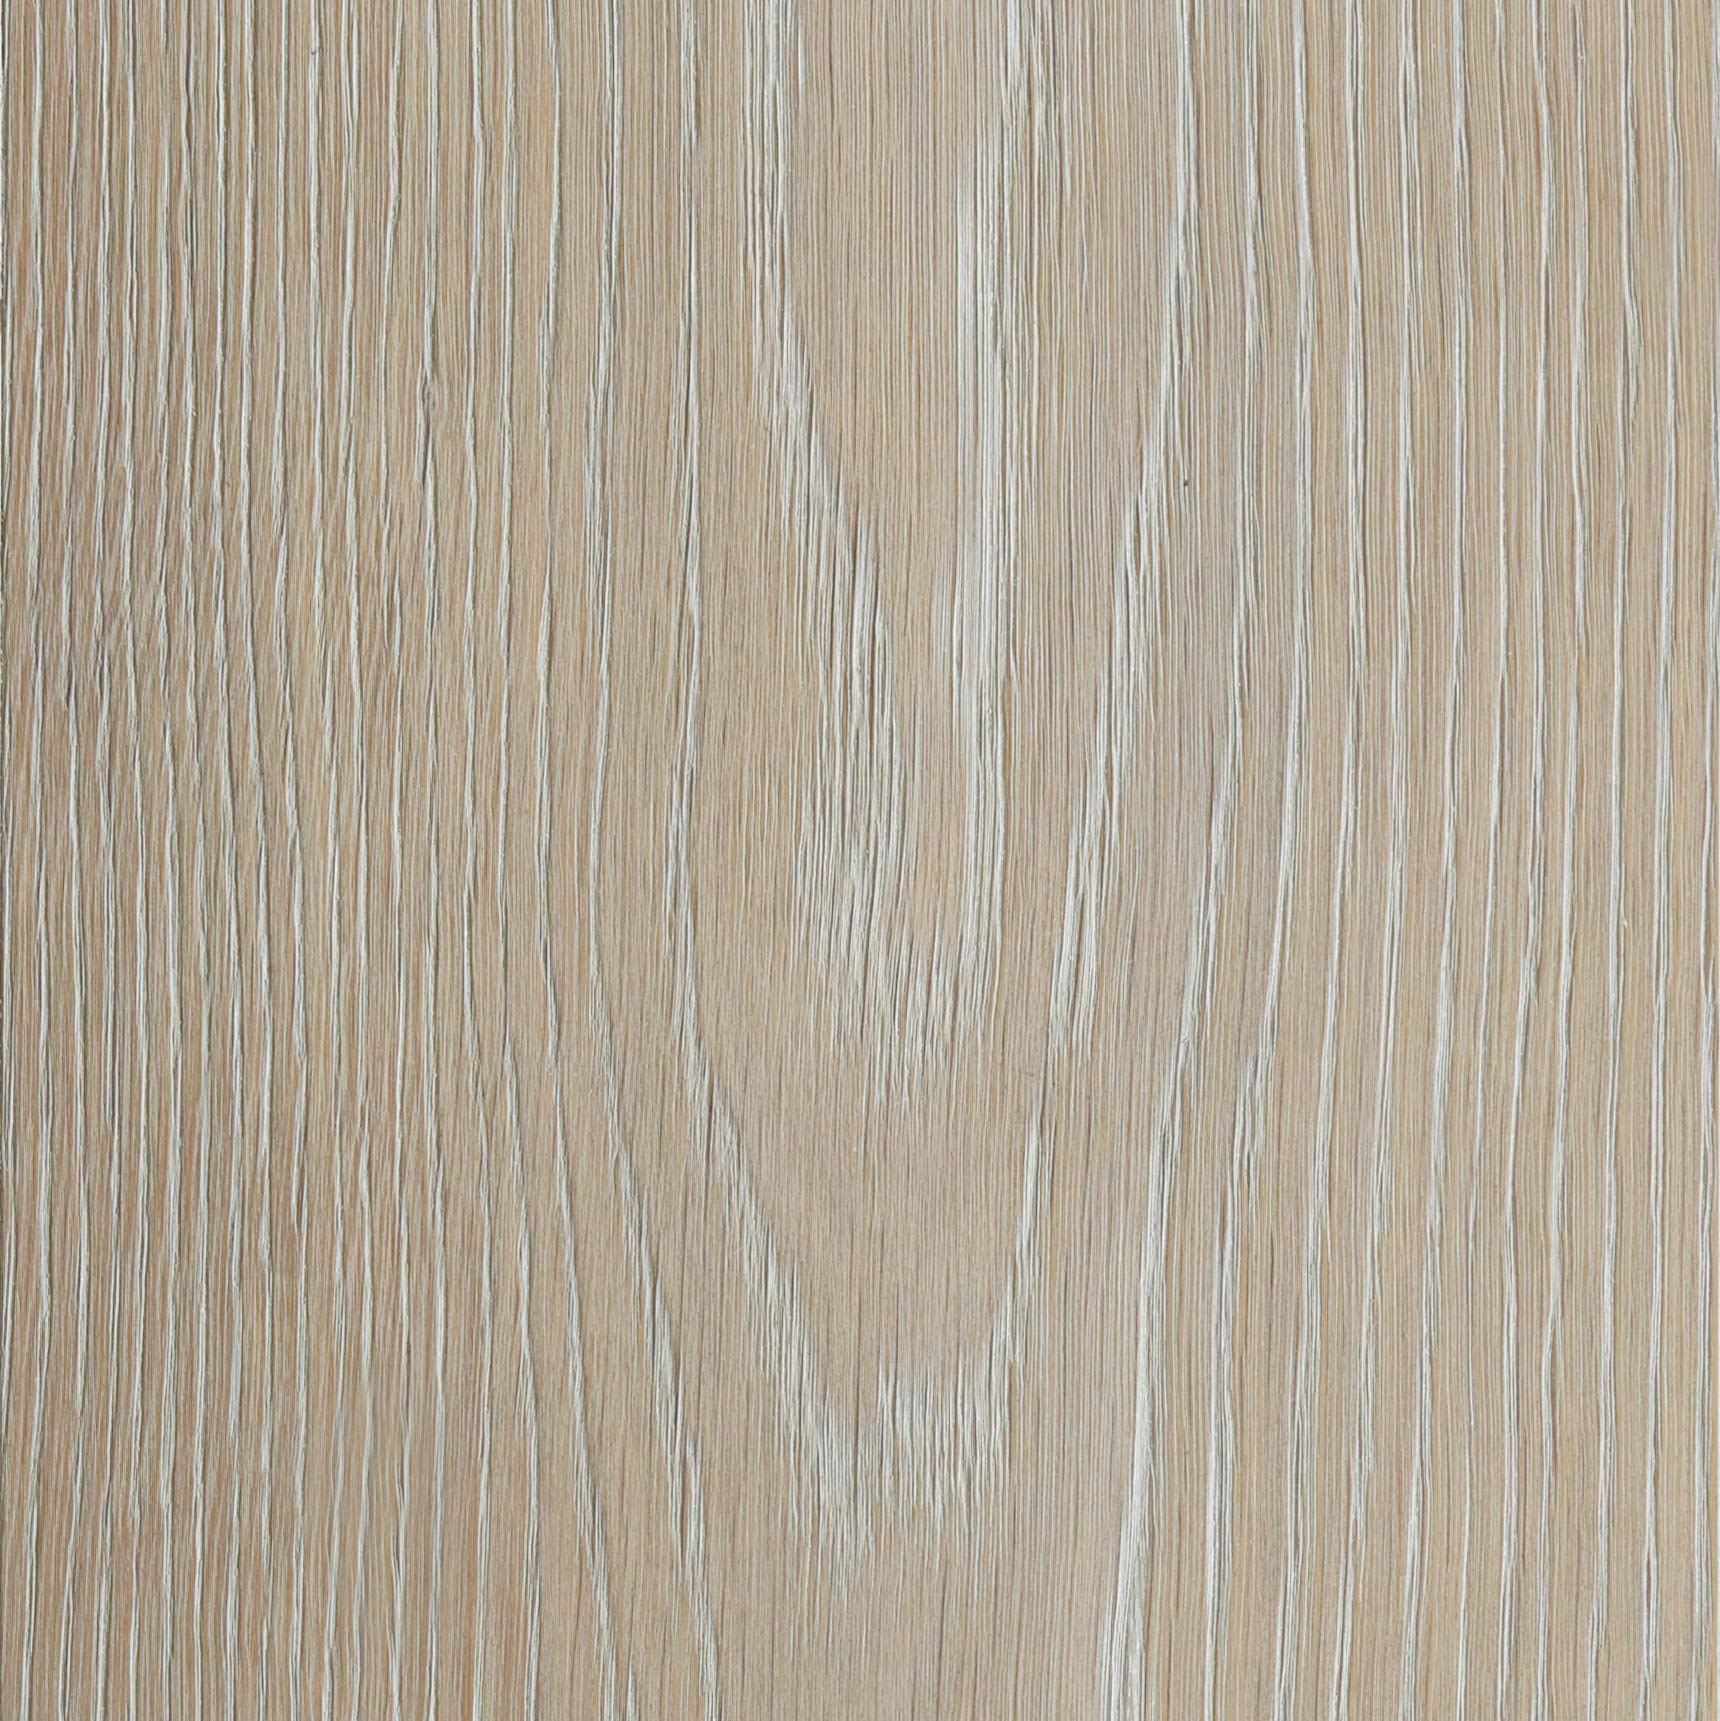 Element7-wide-plank-samples-WashedOak_WhiteOil_brushed_AJ_562_094-copy_